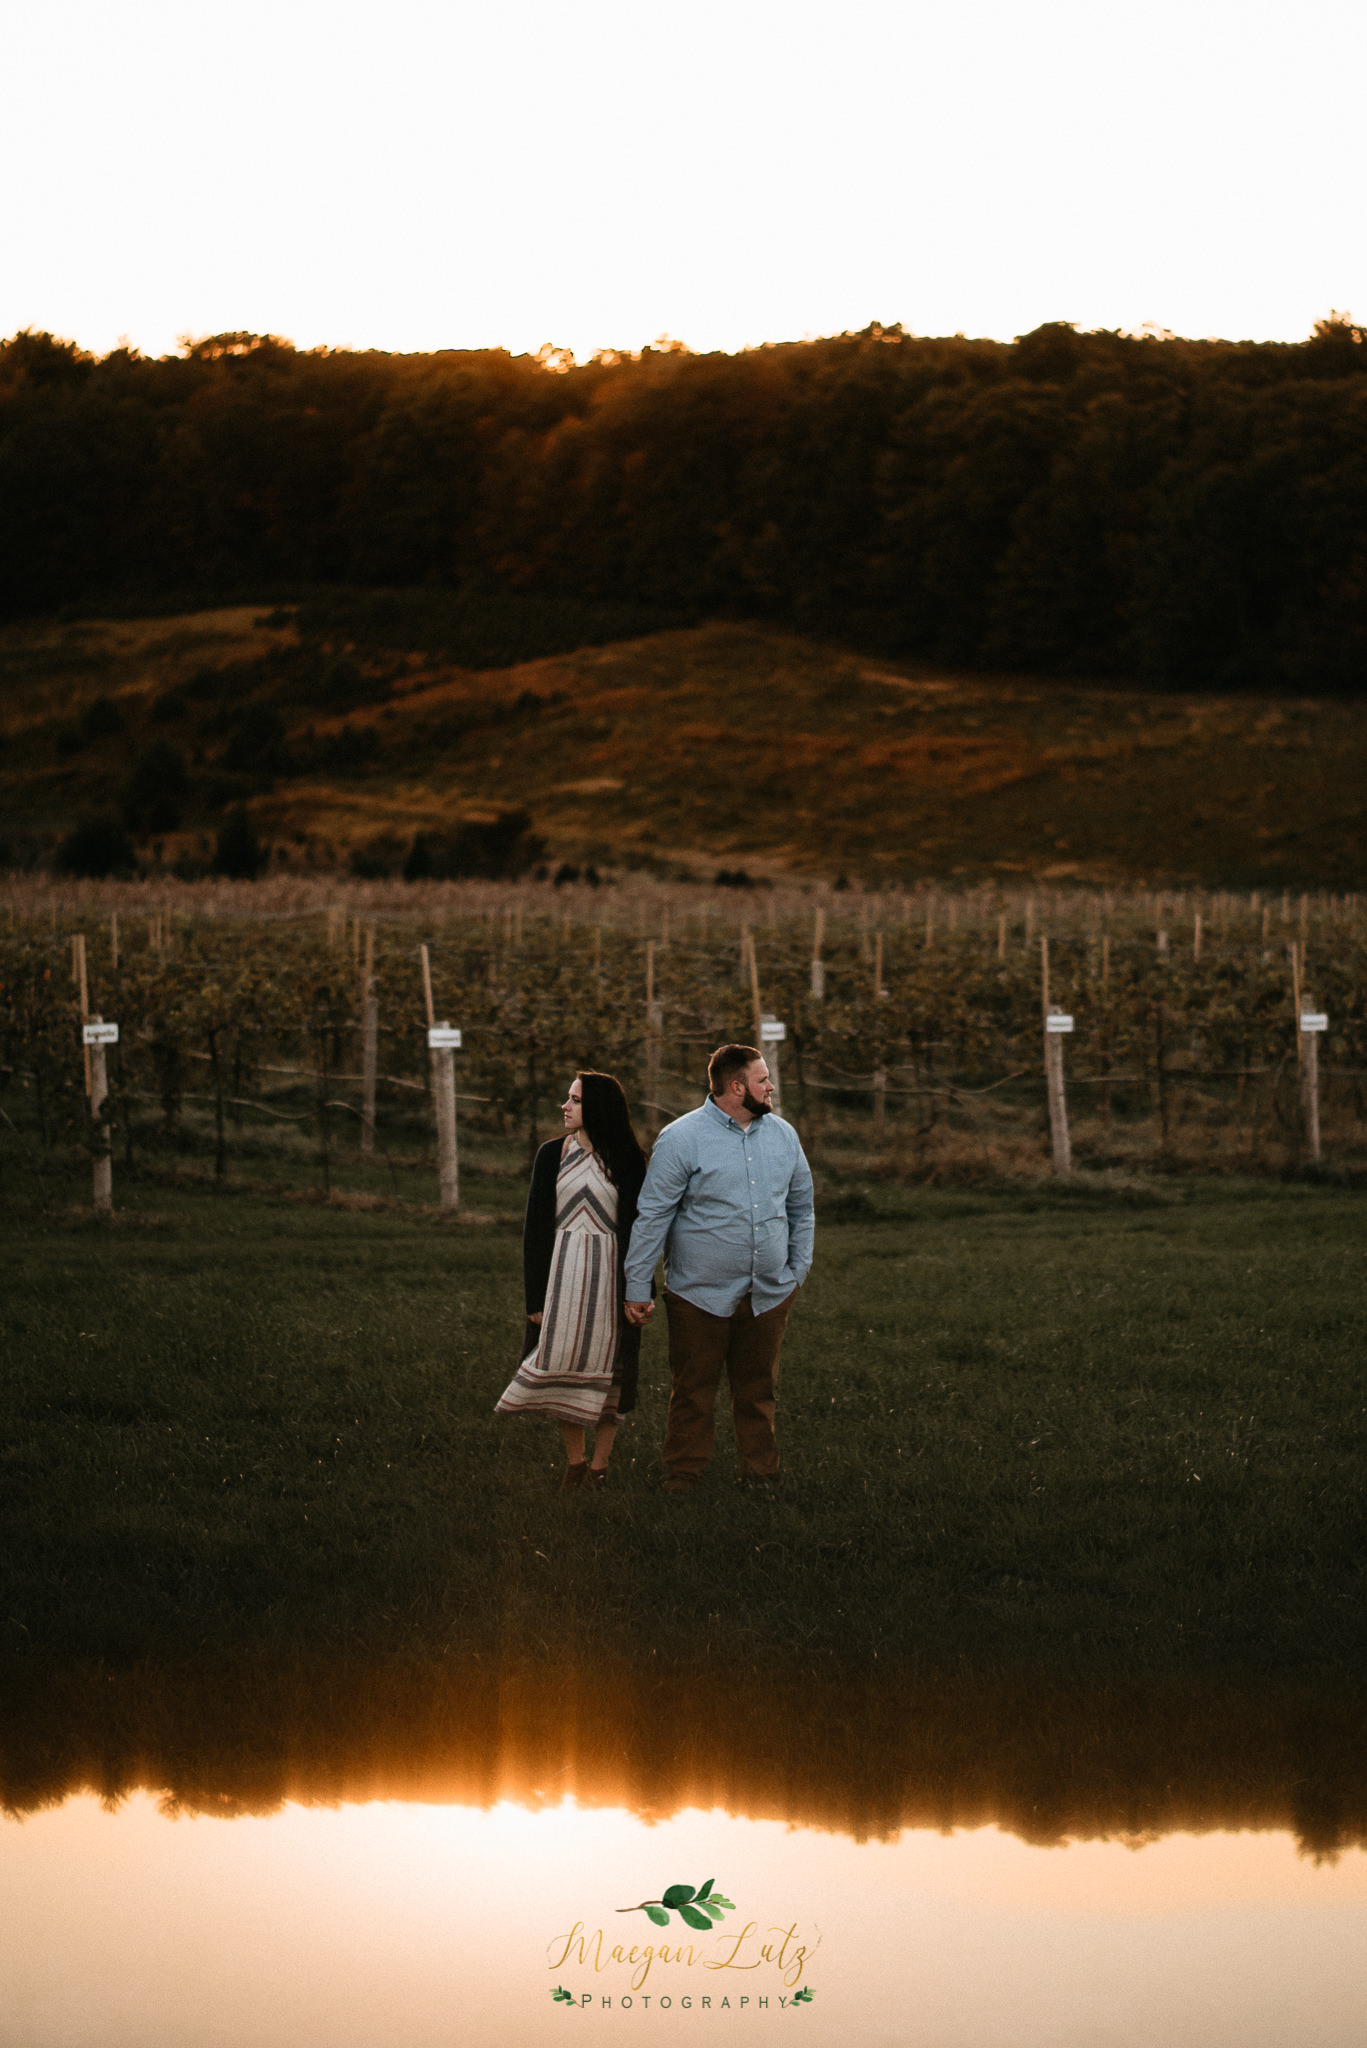 Poconos-NEPA-Wedding-Engagement-Photographer-session-at-Blue-Ridge-Estate-Vineyard-Winery-22.jpg